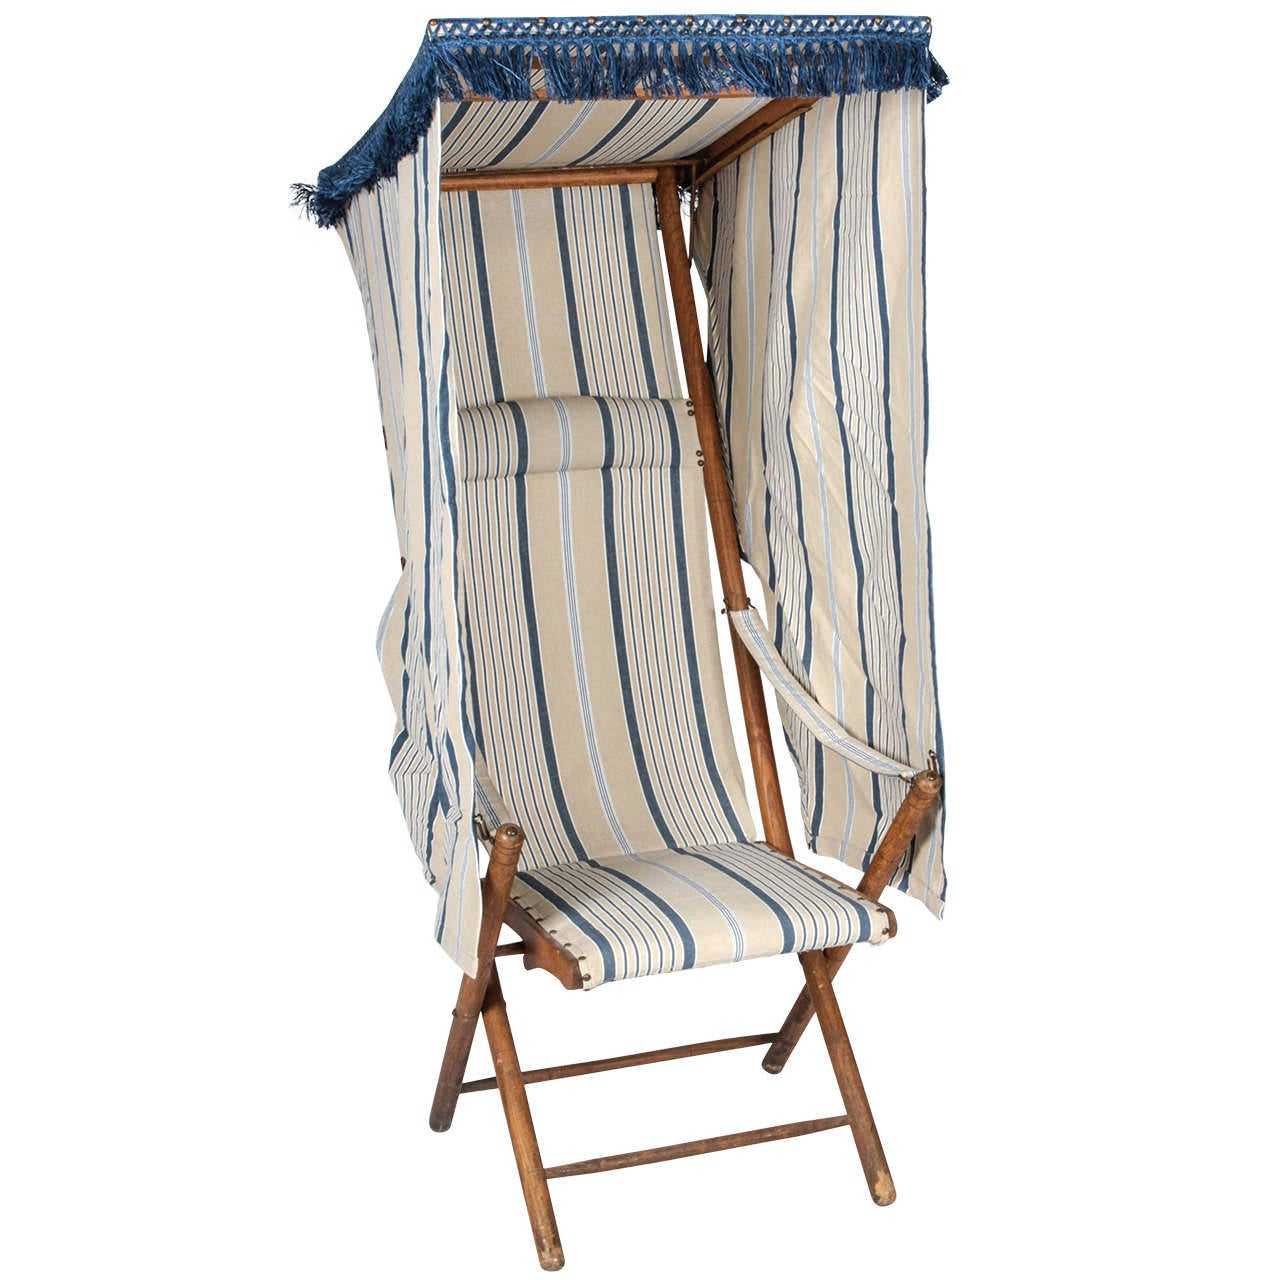 Fold Up Chair With Canopy French Beach Chair With Canopy At 1stdibs